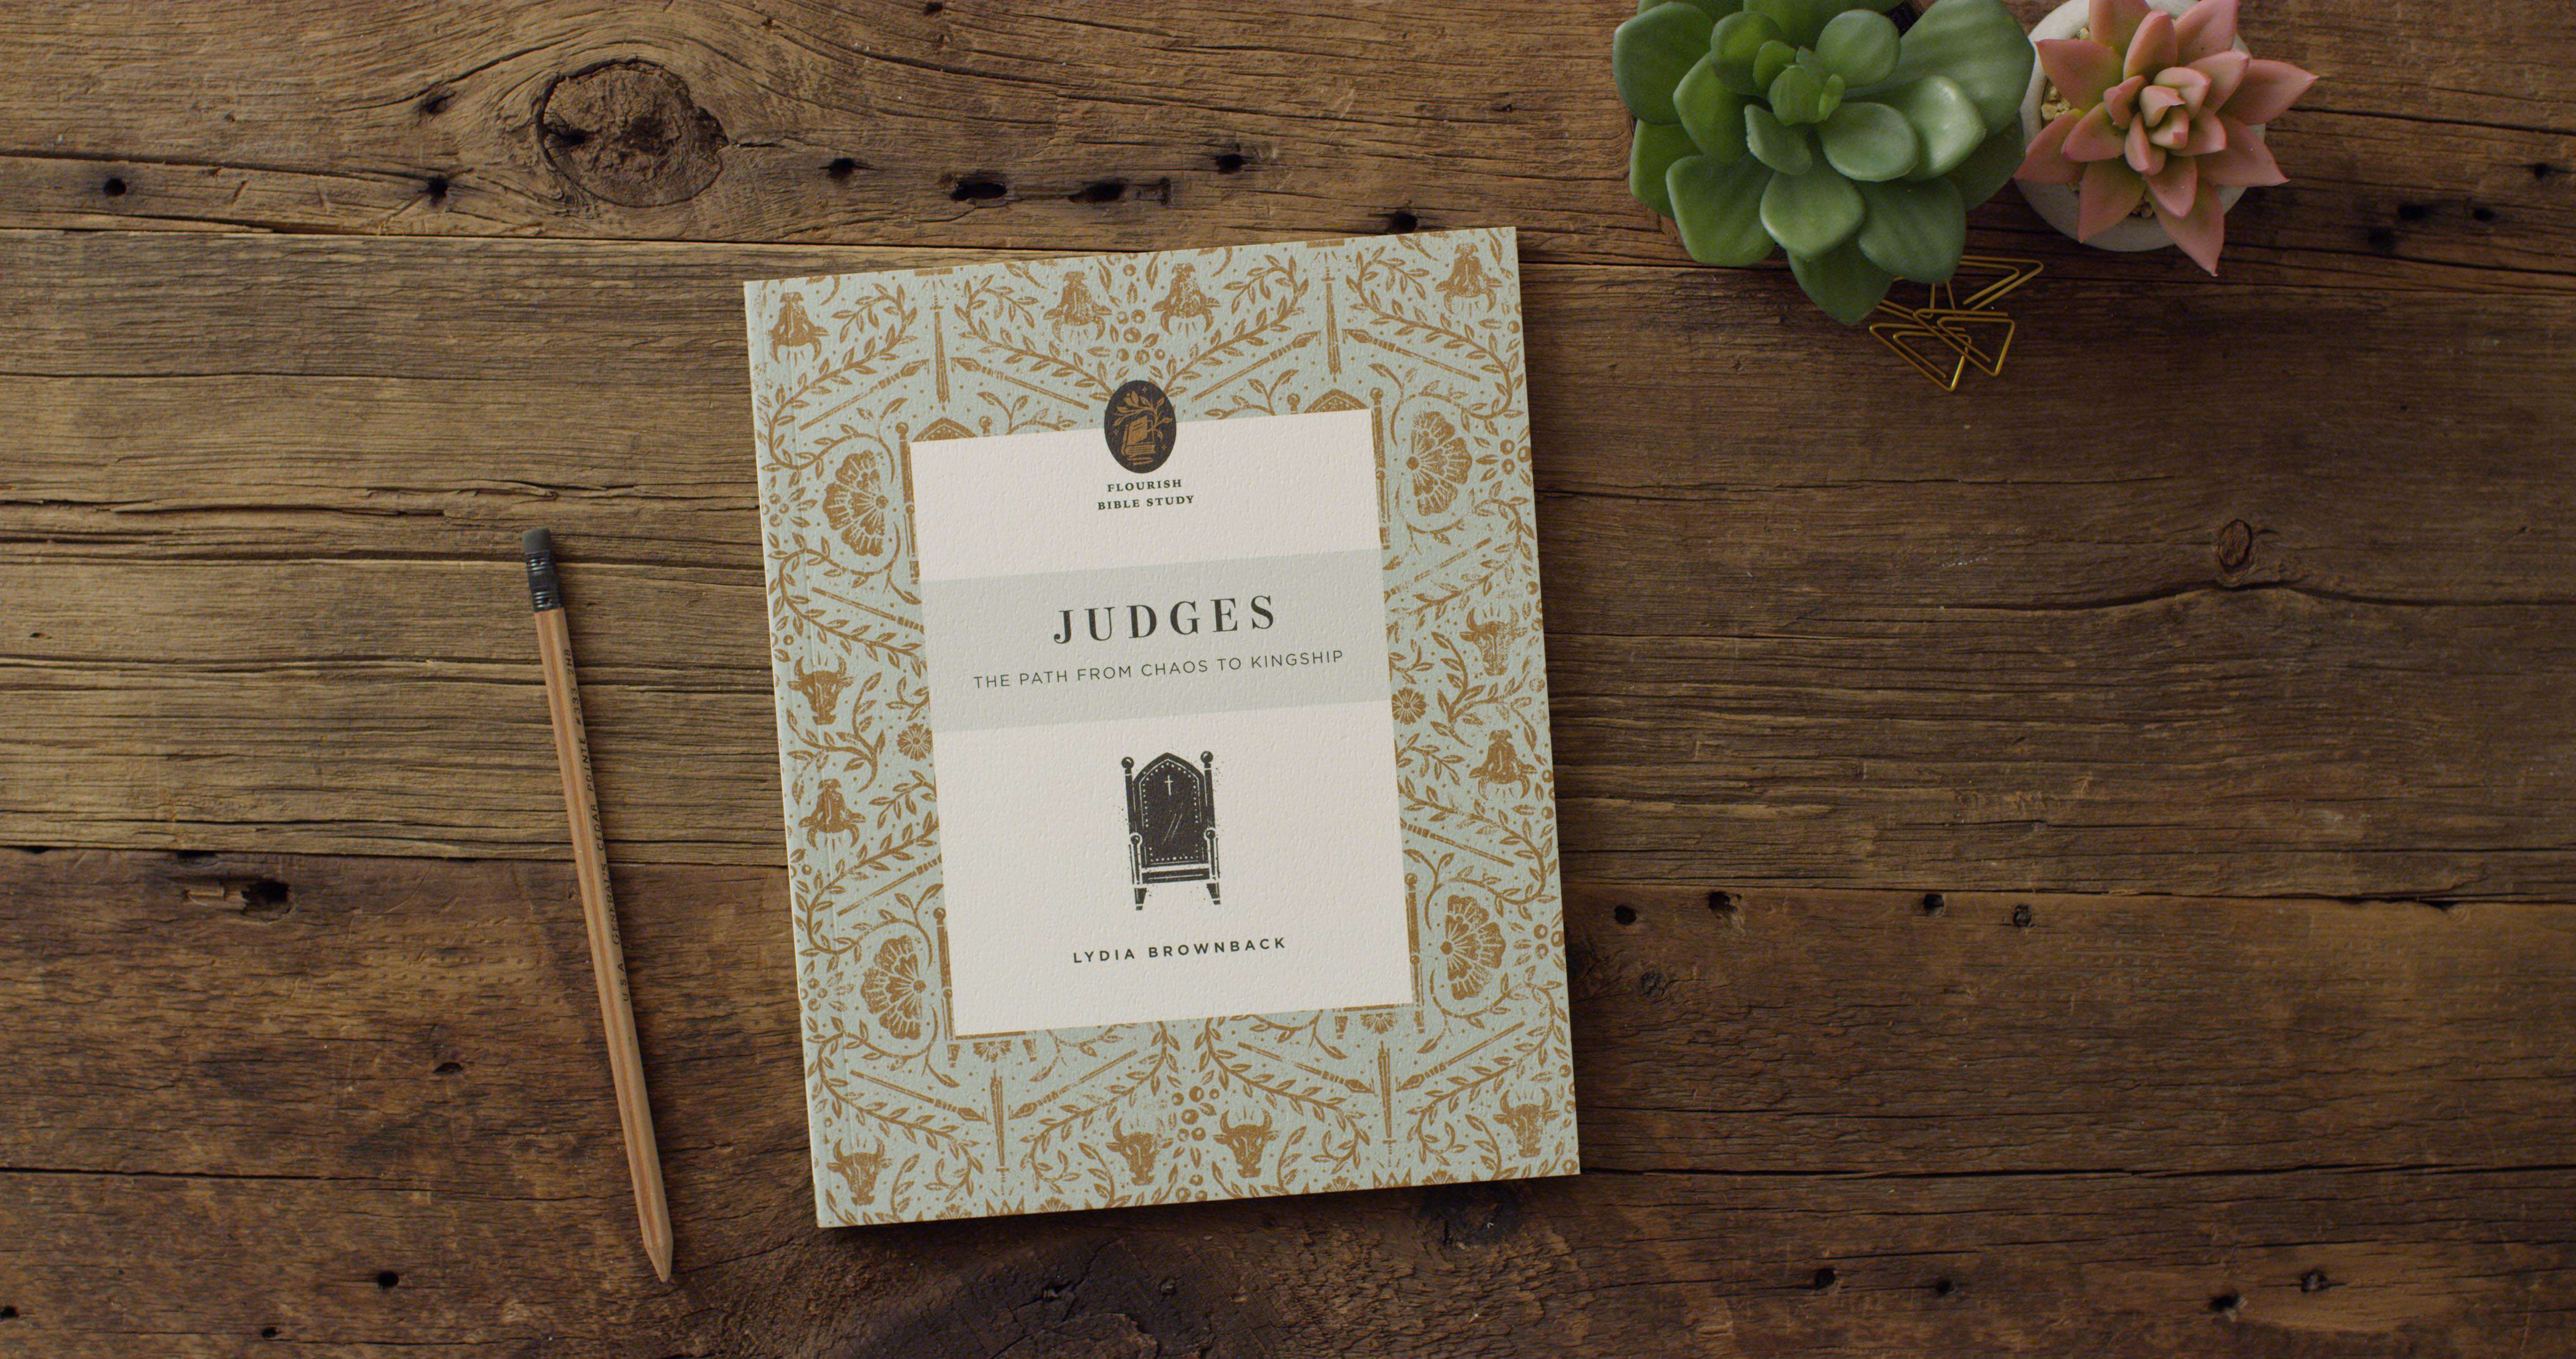 Judges: The Path from Chaos to Kingship